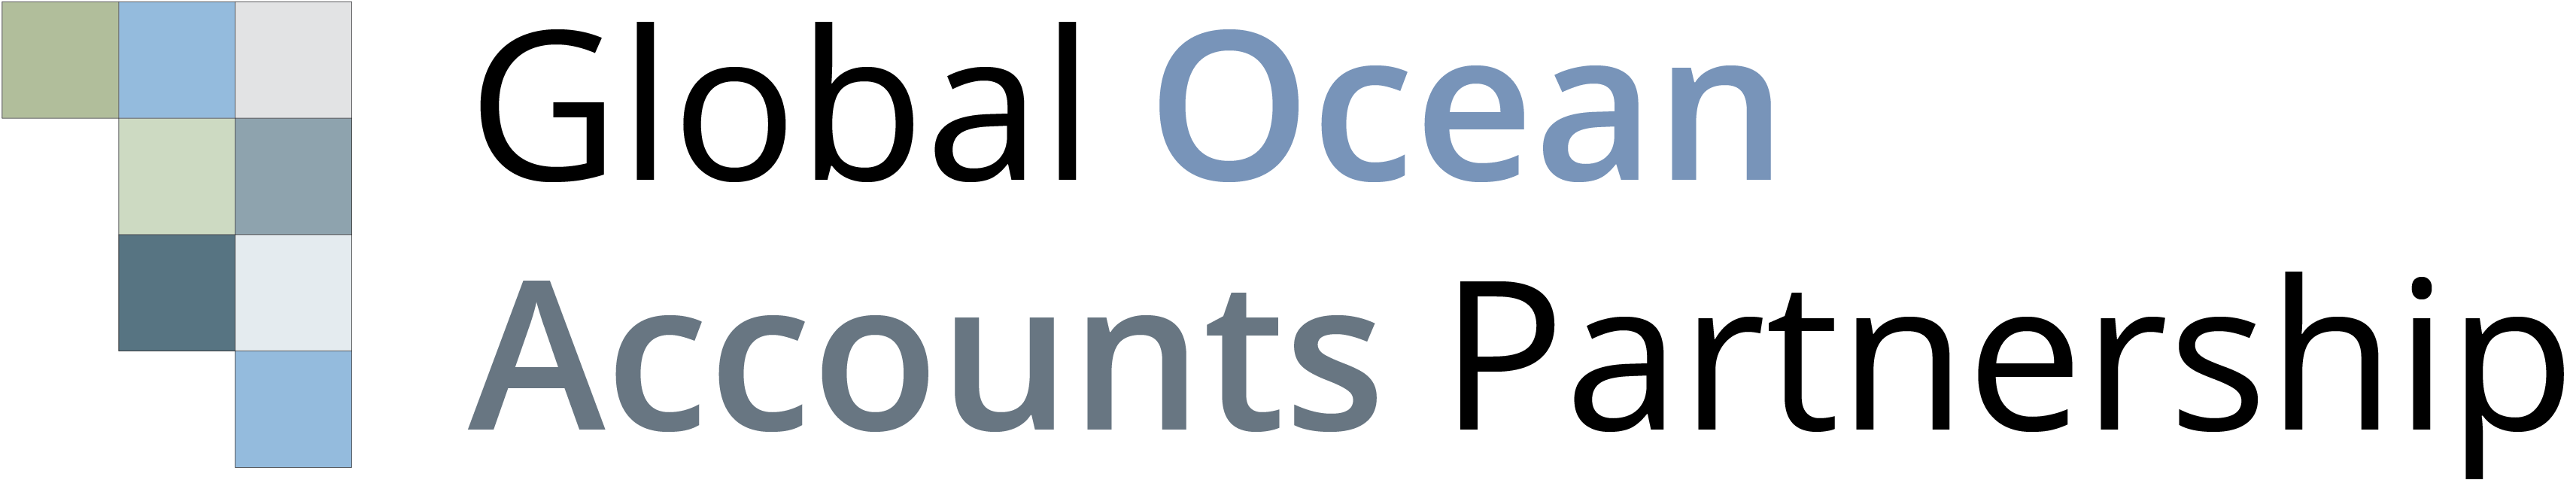 The Global Ocean Accounts Partnership